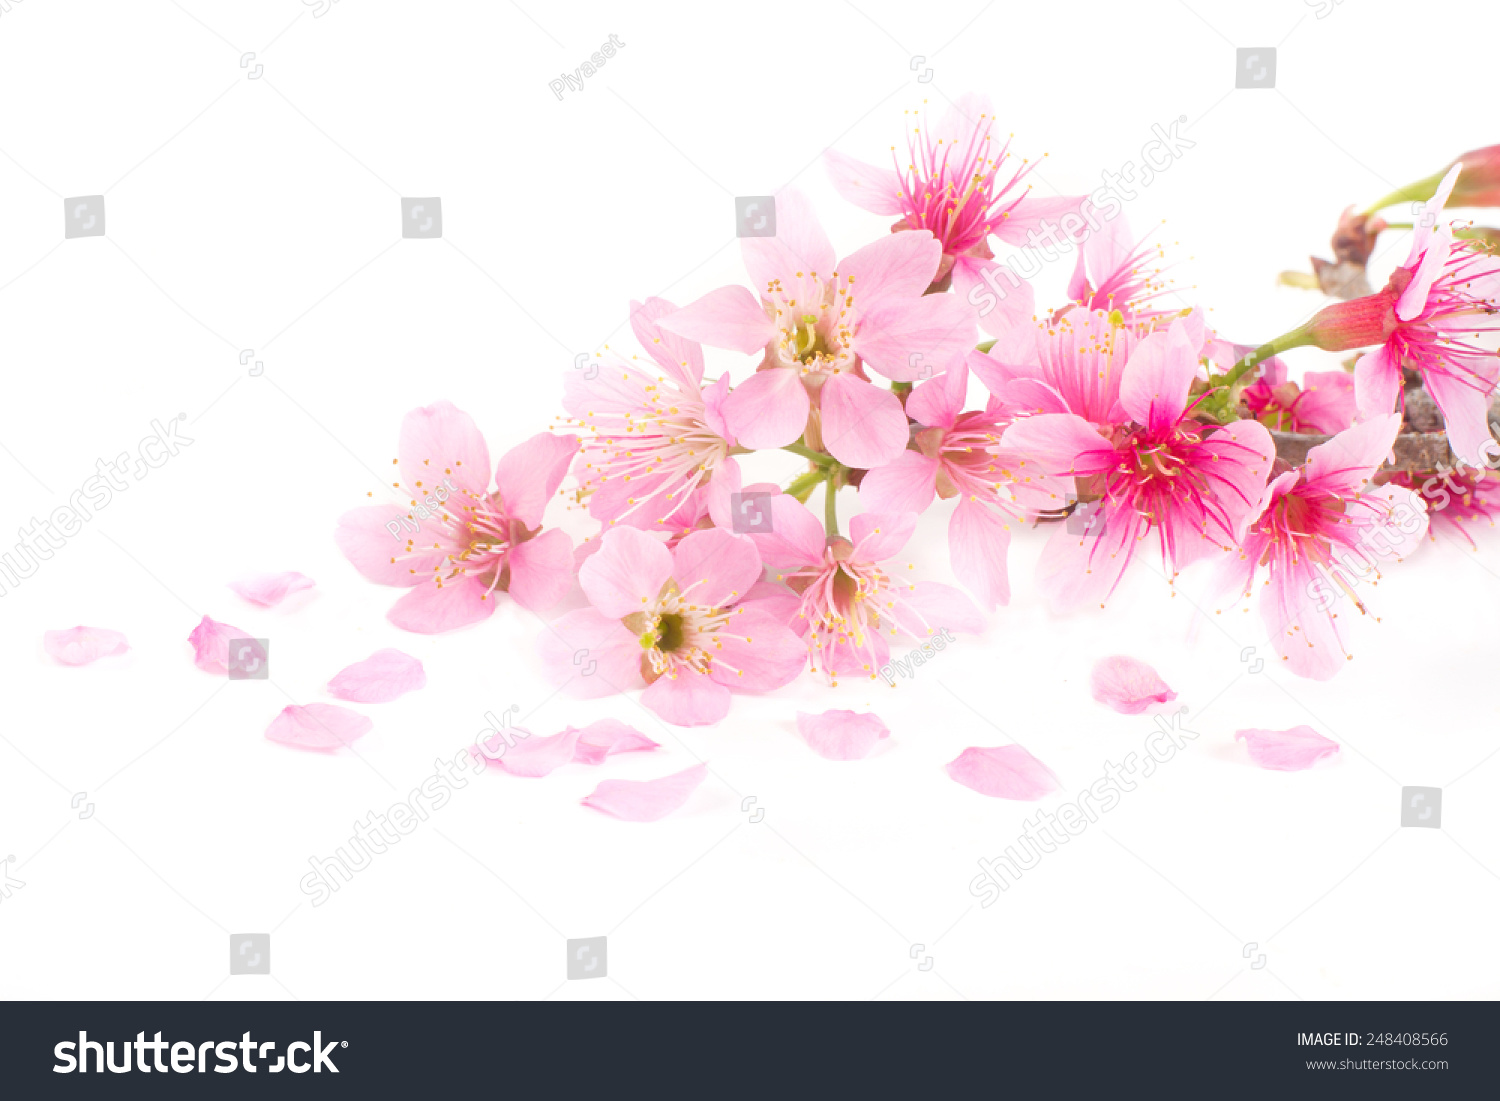 Pink cherry blossom sakura flowers isolated stock photo 248408566 pink cherry blossom sakura flowers isolated on white background dhlflorist Images